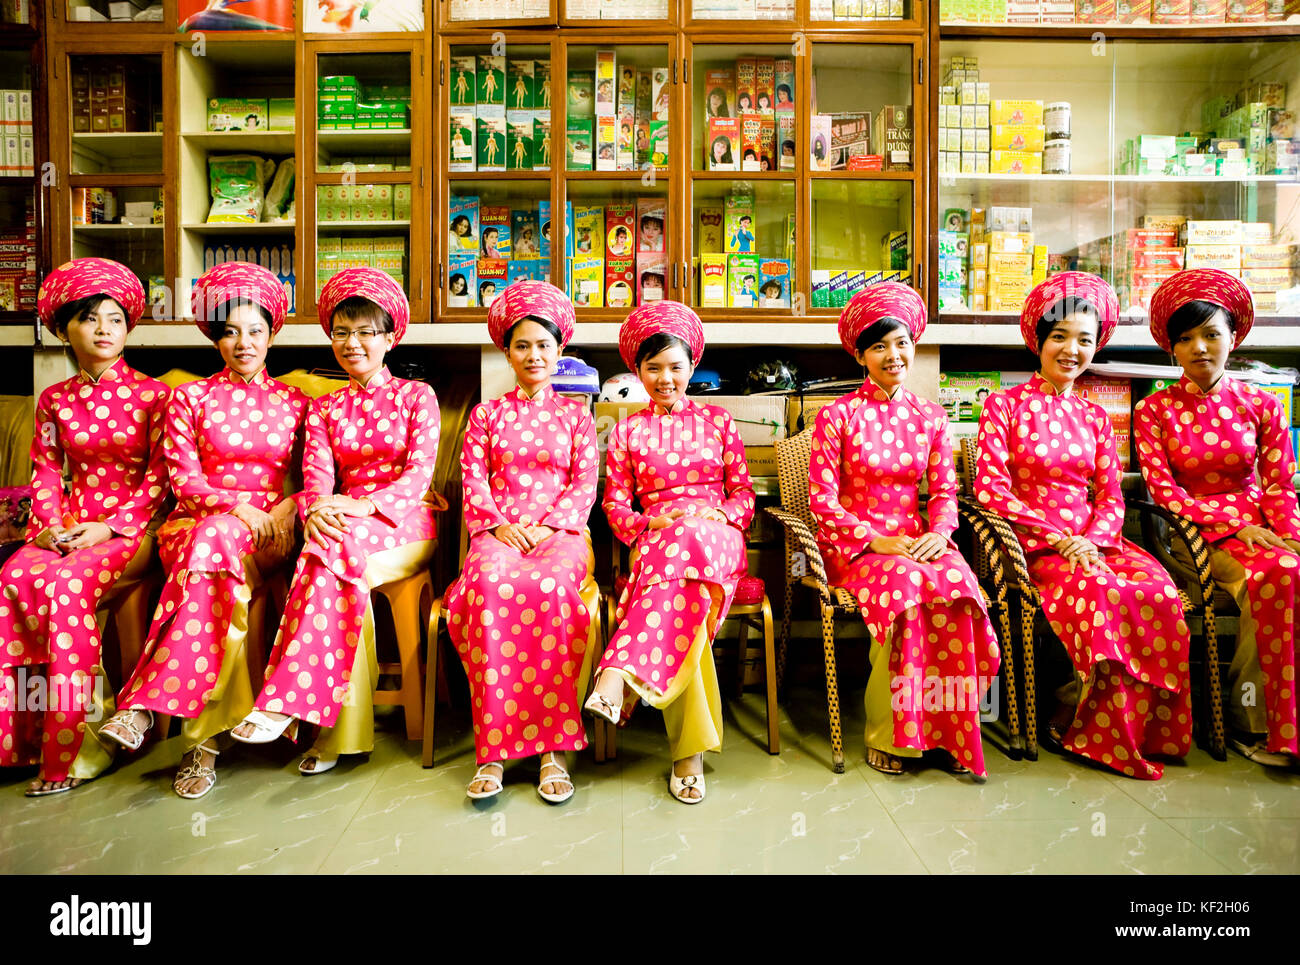 Ho Chi Minh City, Vietnam - January 1, 2009: Group of young Vietnamese women bridesmaids sitting in a pharmacy in - Stock Image